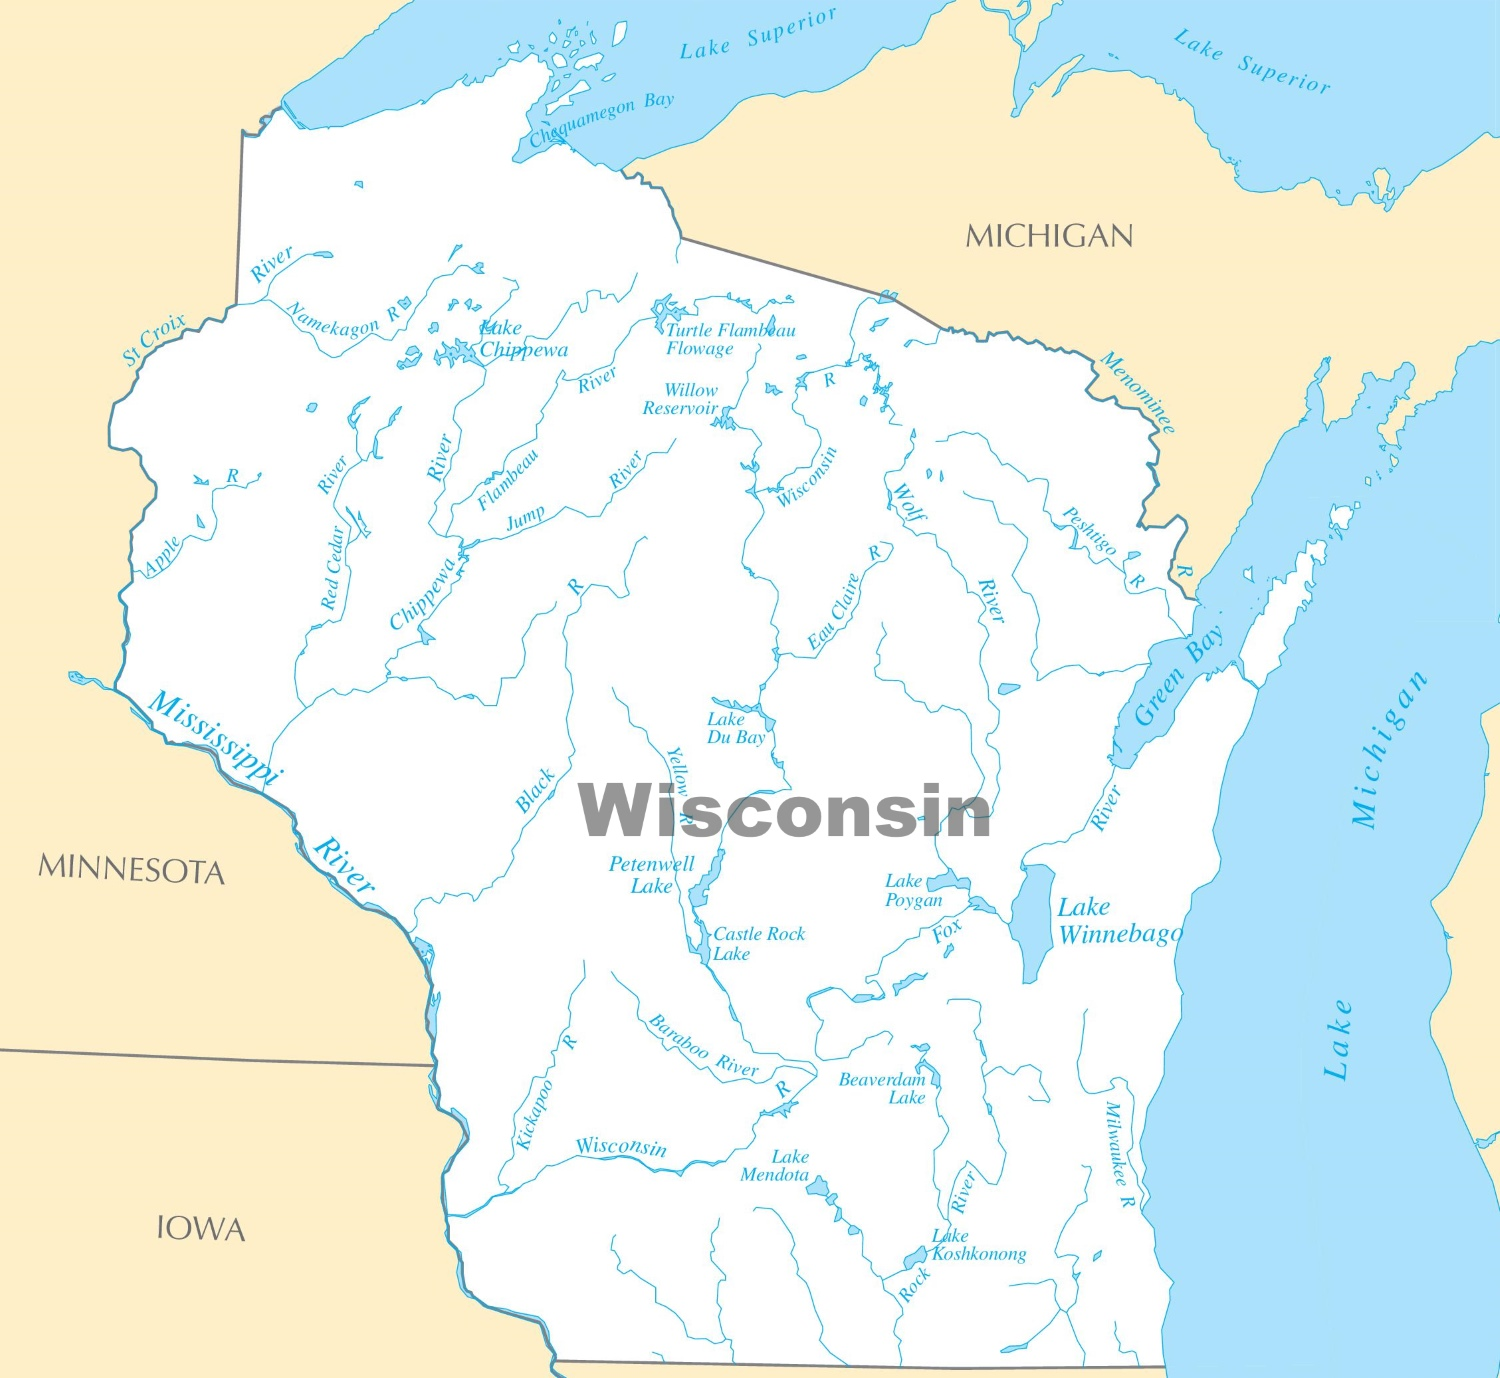 Wisconsin Lake Maps Wisconsin lakes map